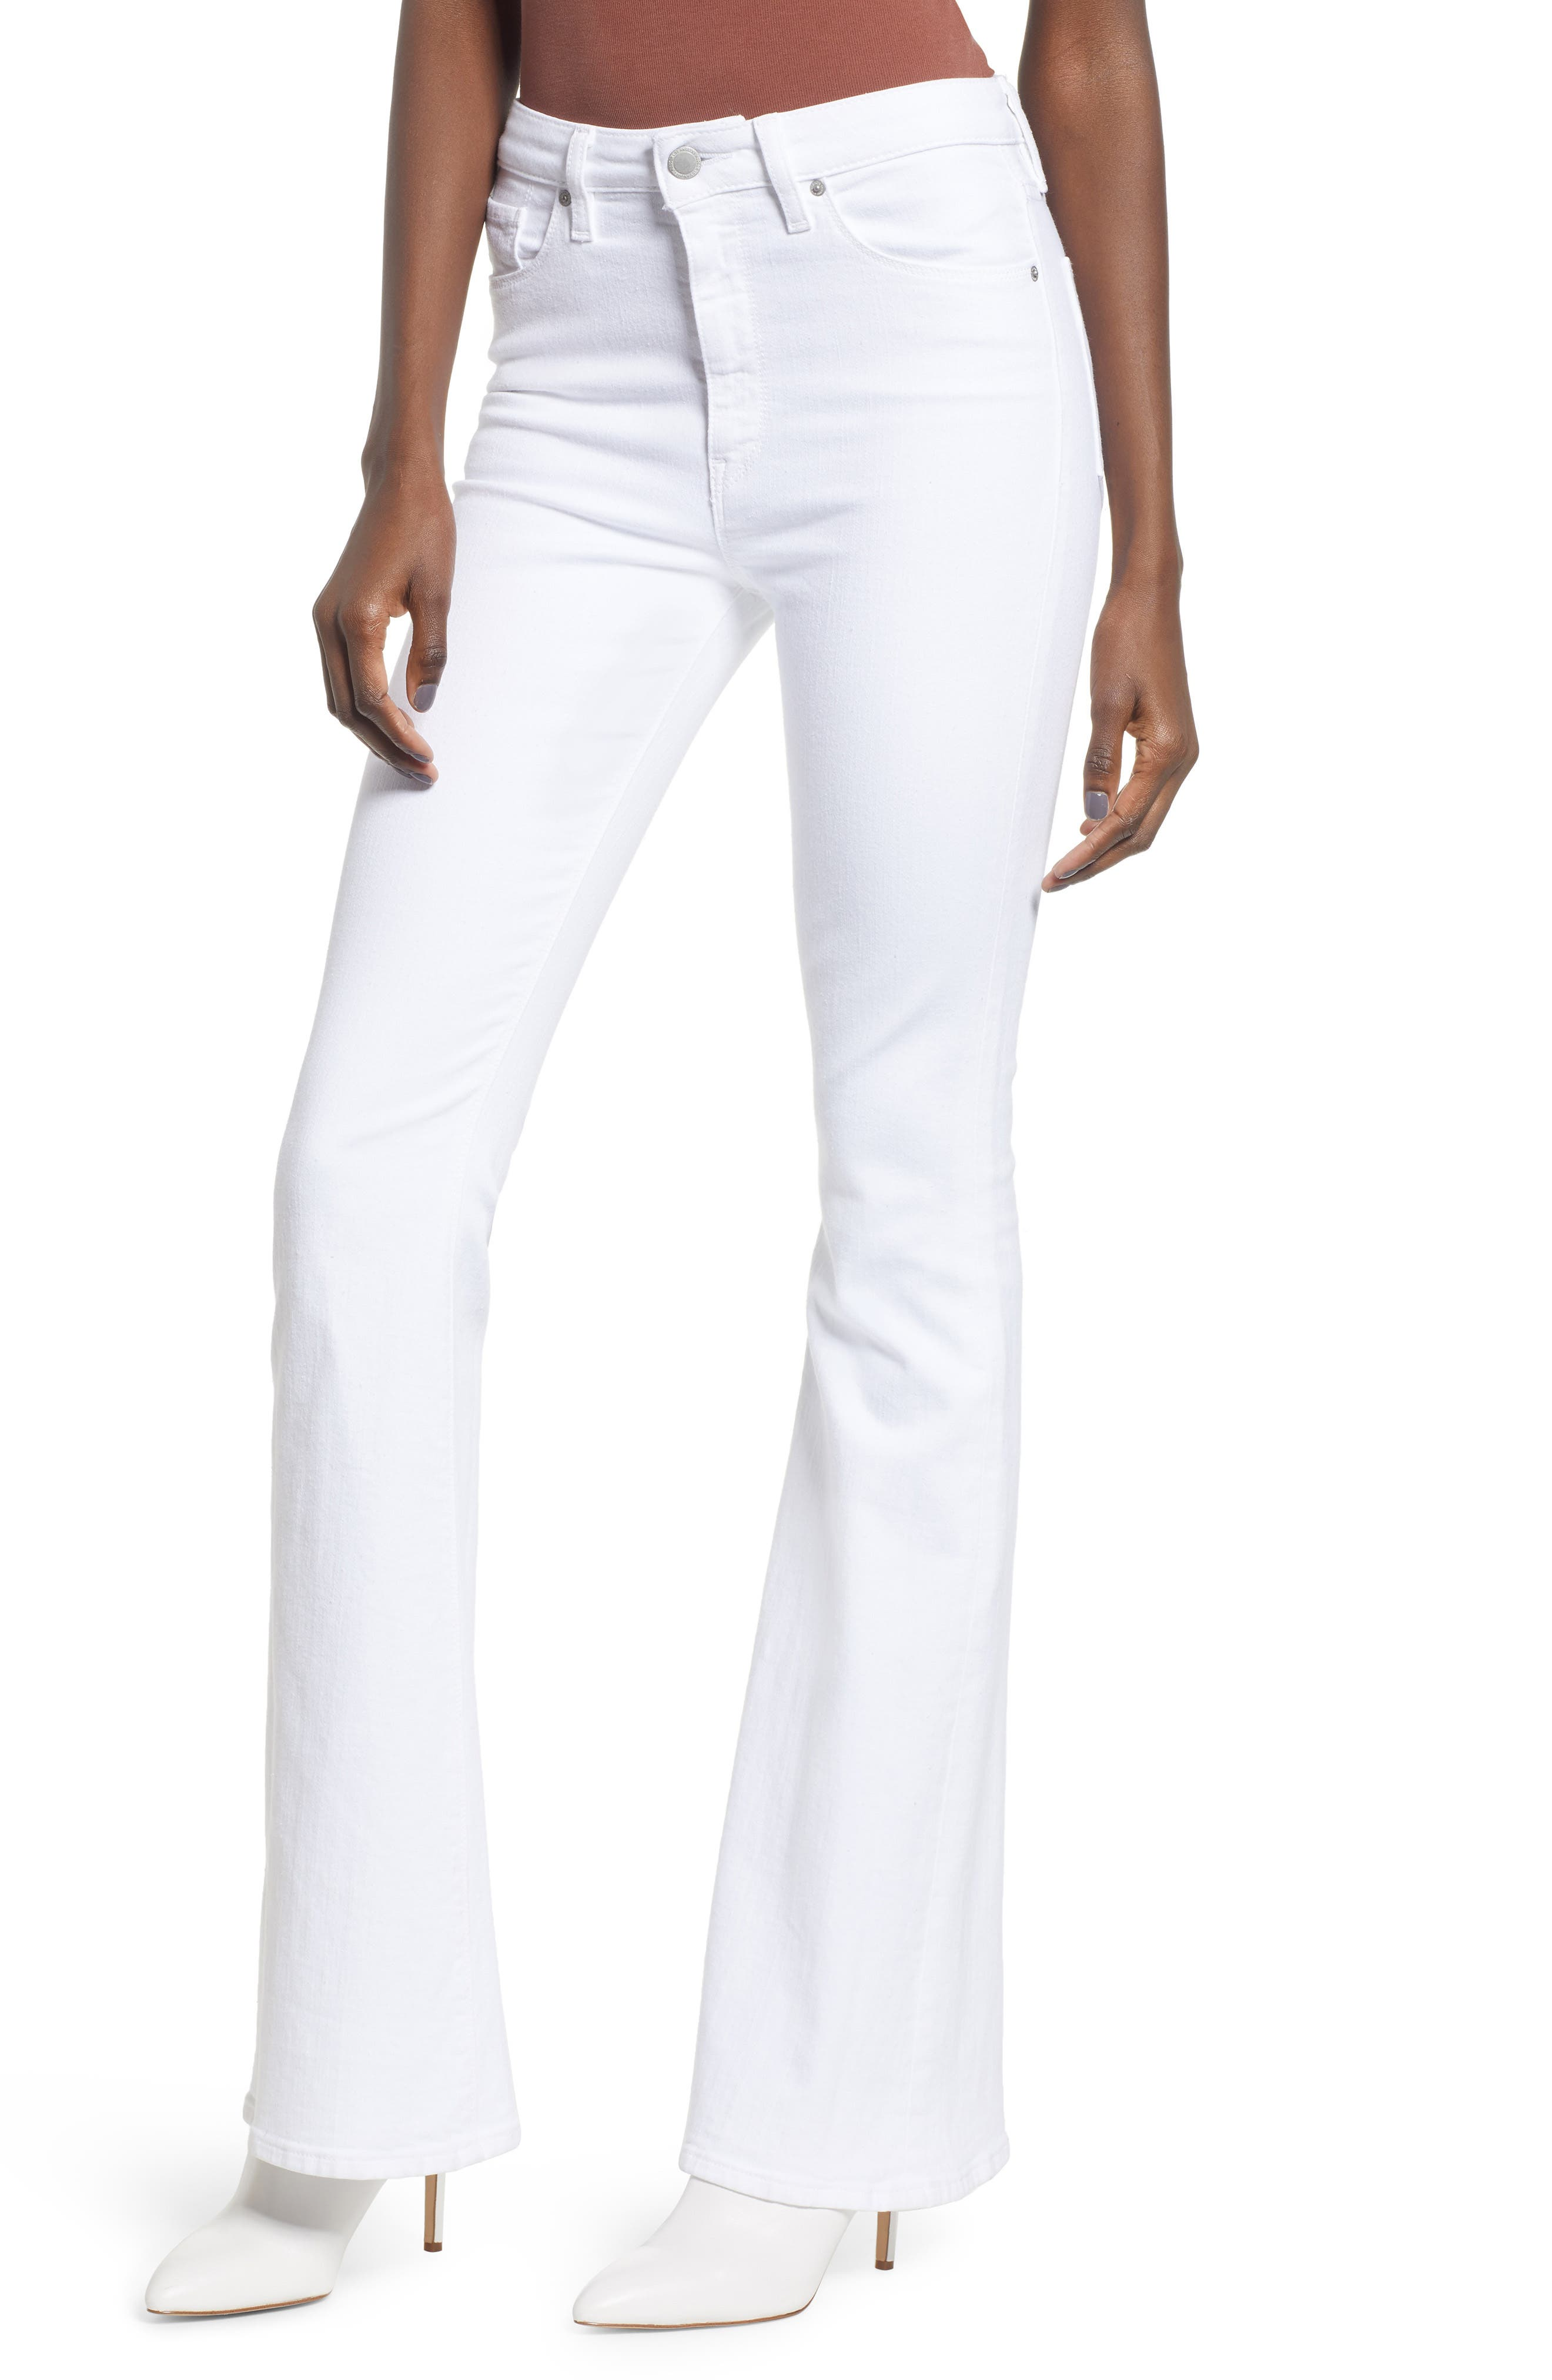 High-waist jeans are designed to hug your curves before flaring out dramatically at the knee, while retaining their figure-sculpting shape all day long. Style Name: Hudson Jeans Holly High Waist Flare Jeans. Style Number: 5724684. Available in stores.